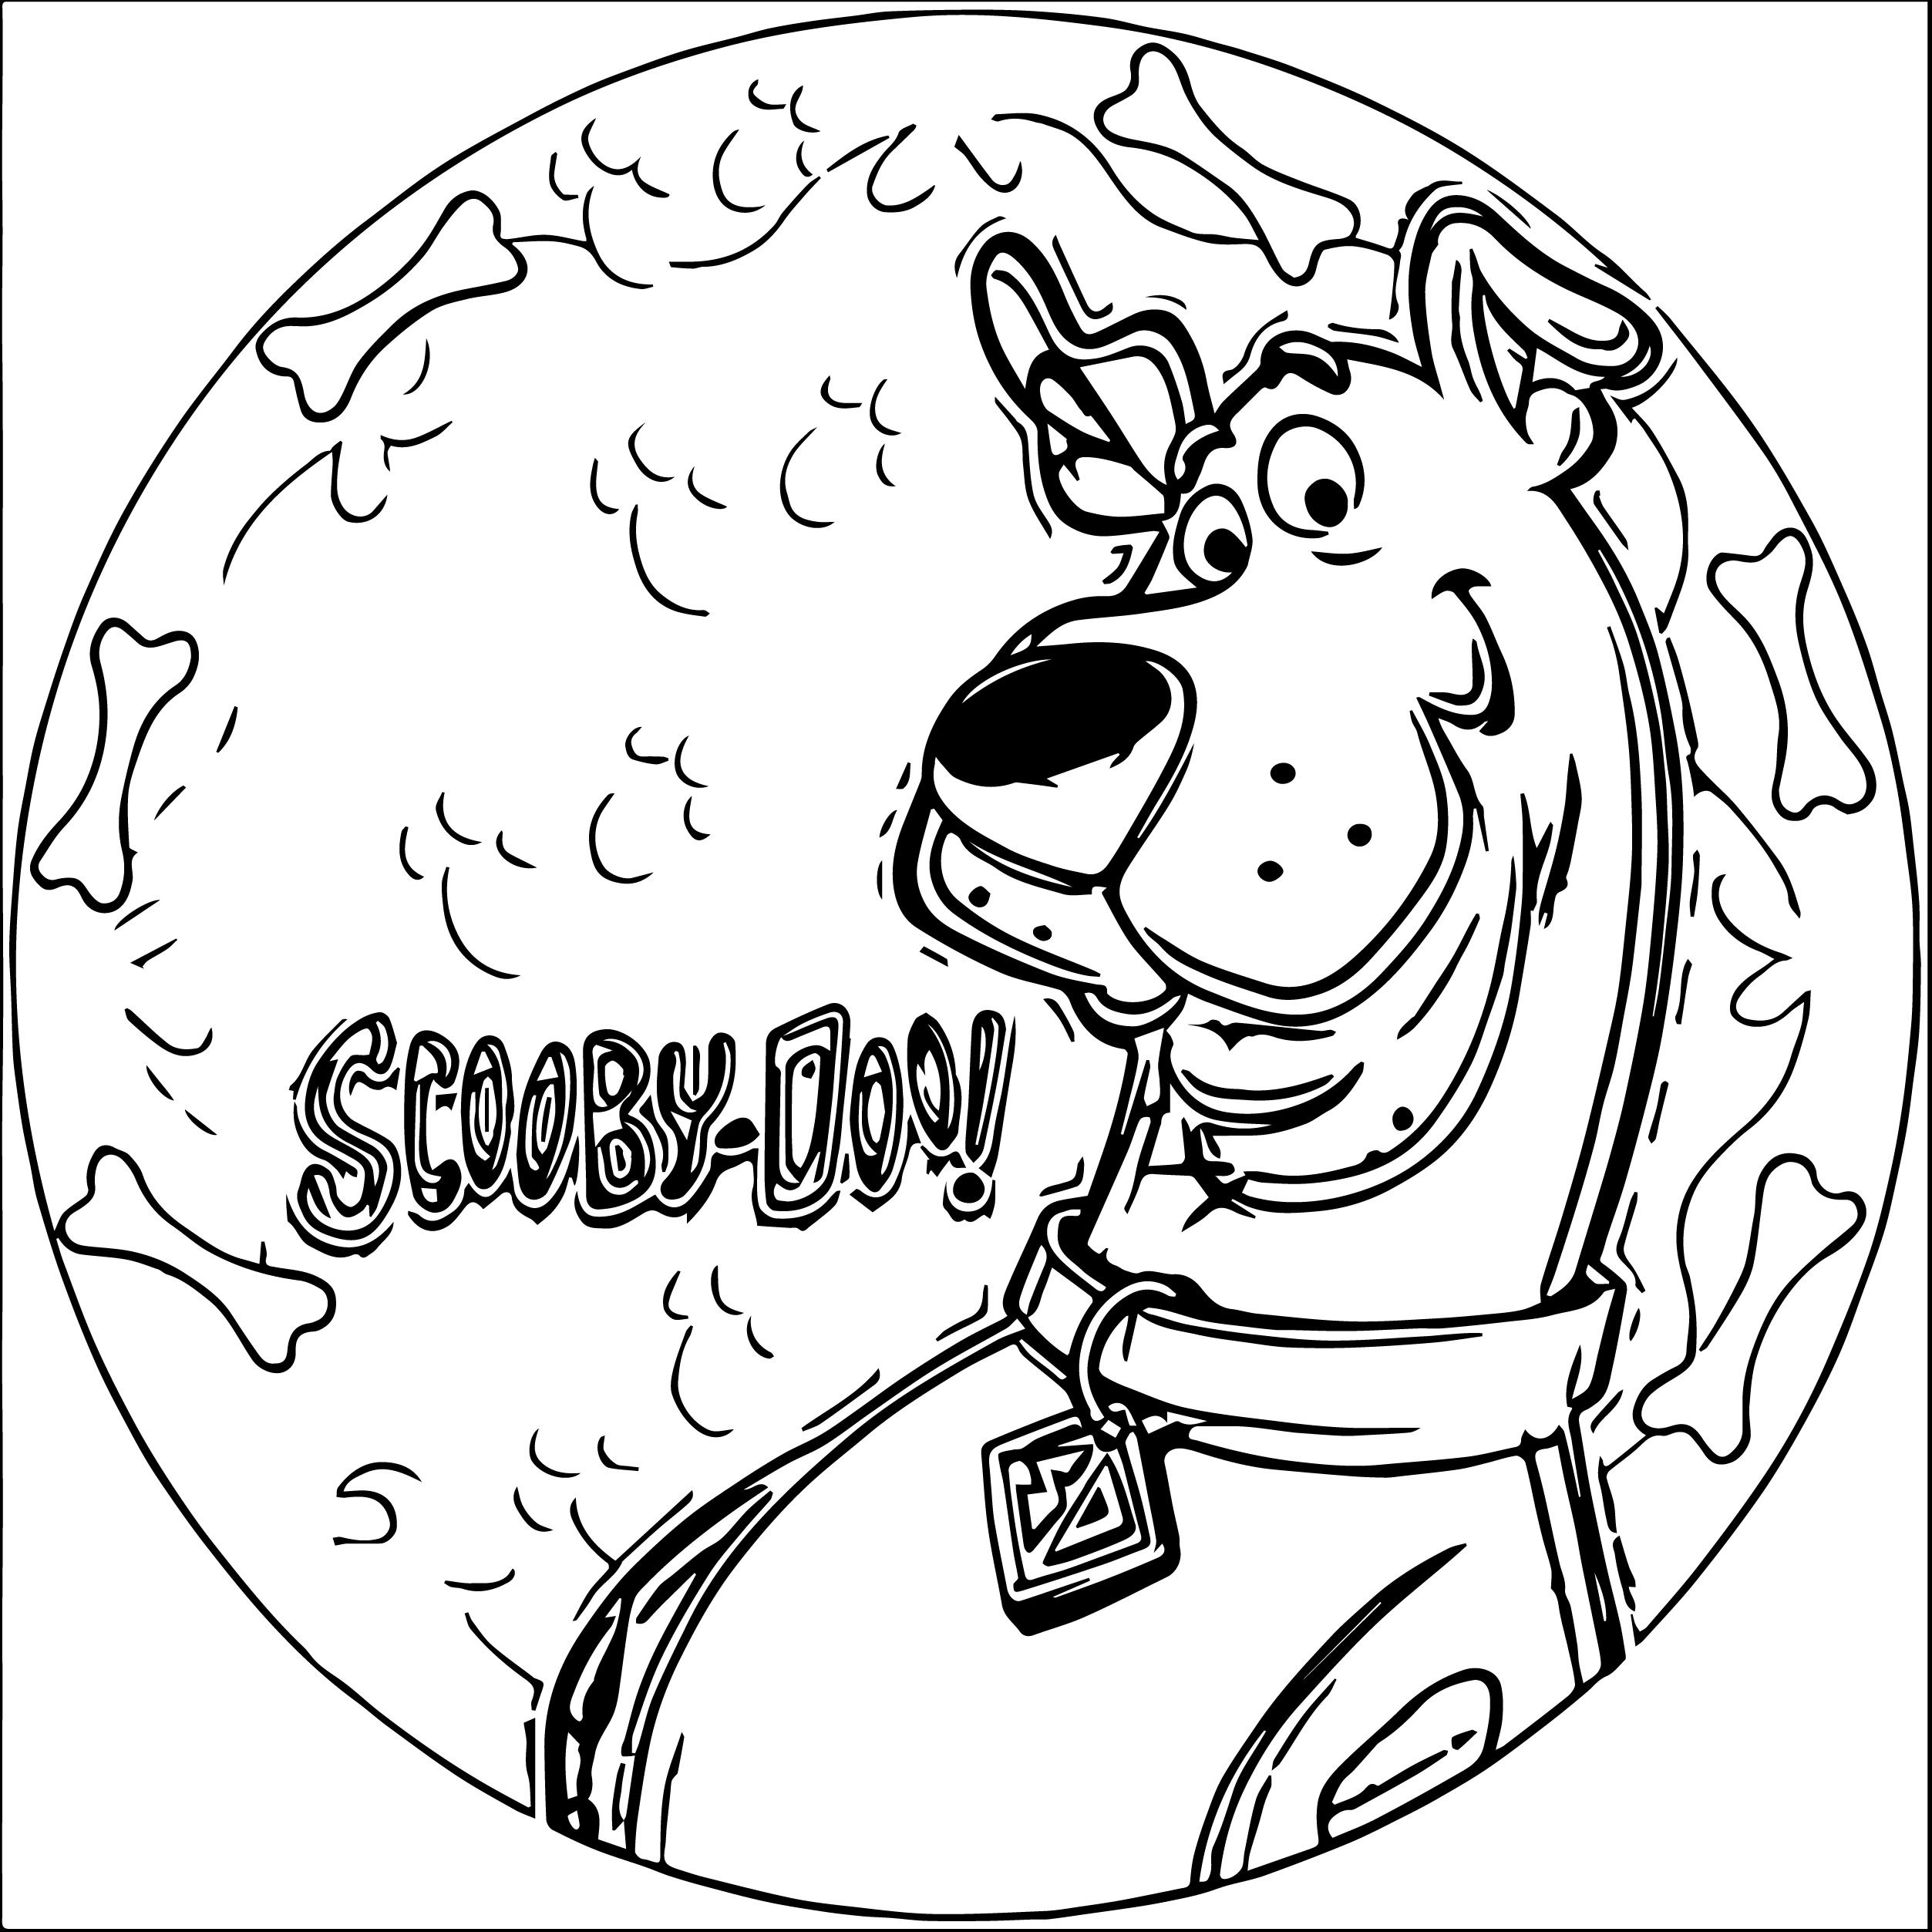 2506x2506 Scooby Doo Coloring Pages Picture Inspirations